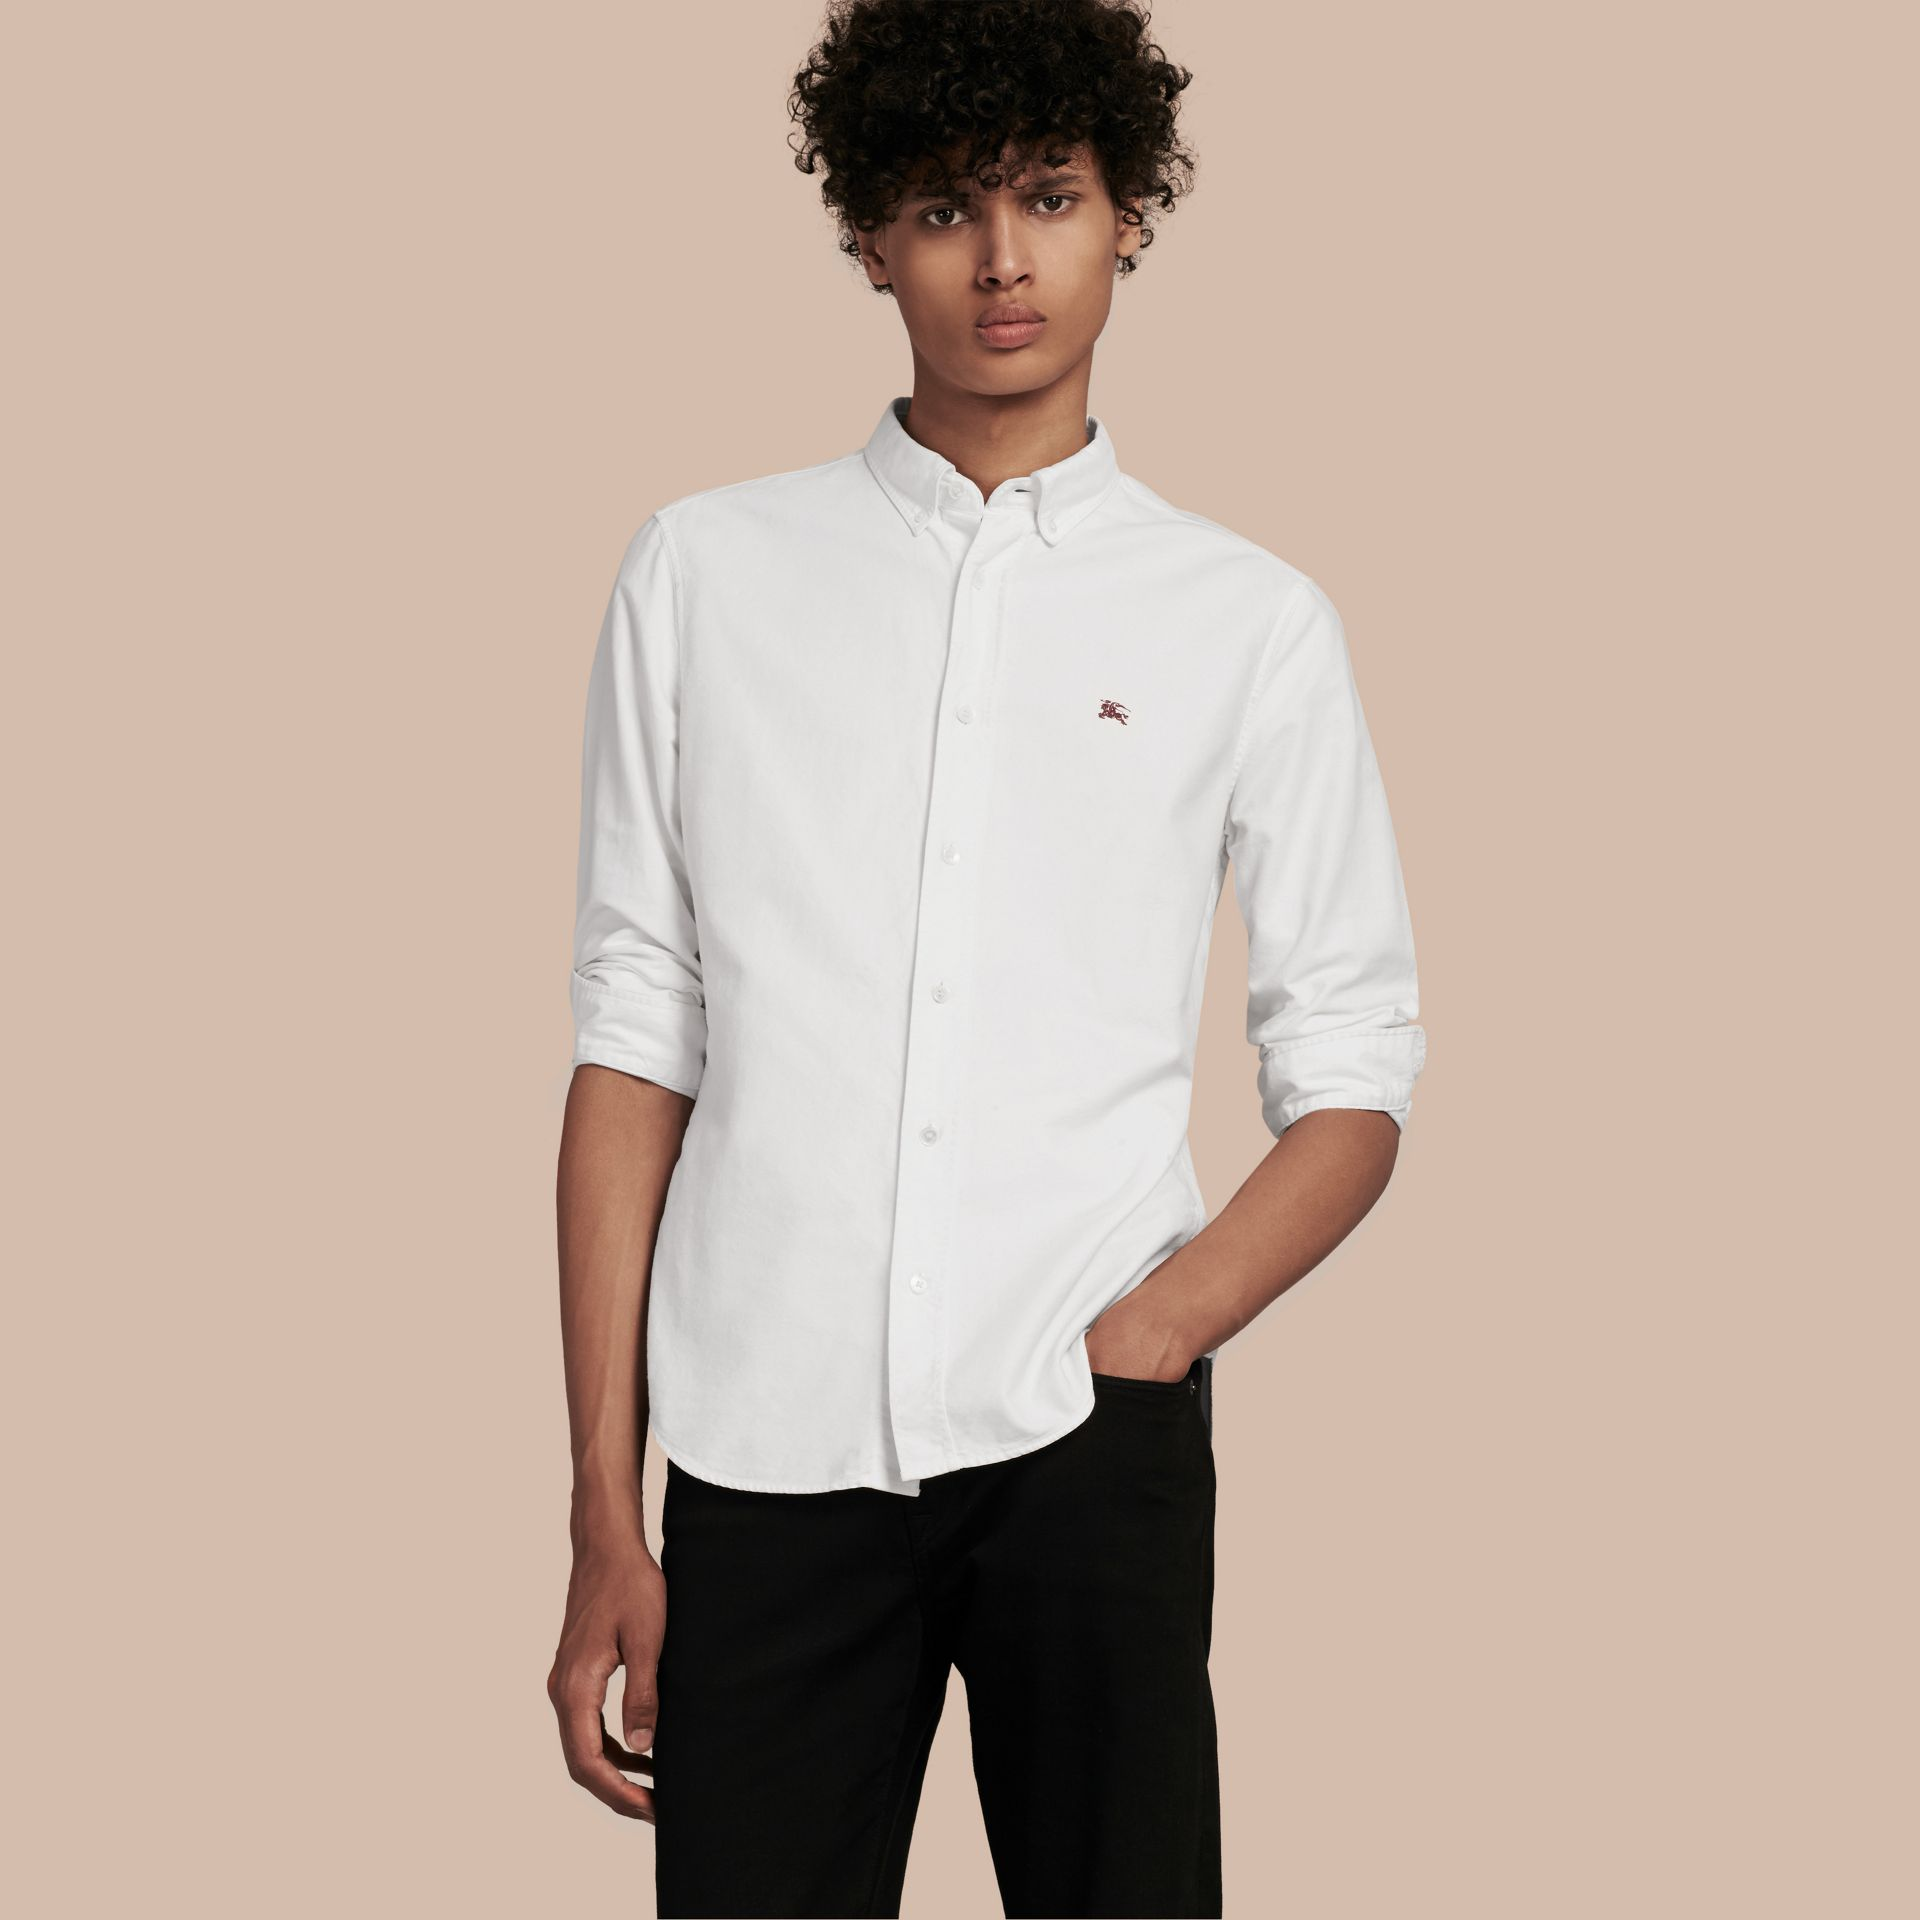 Cotton Oxford Shirt in White - Men | Burberry Hong Kong - gallery image 1